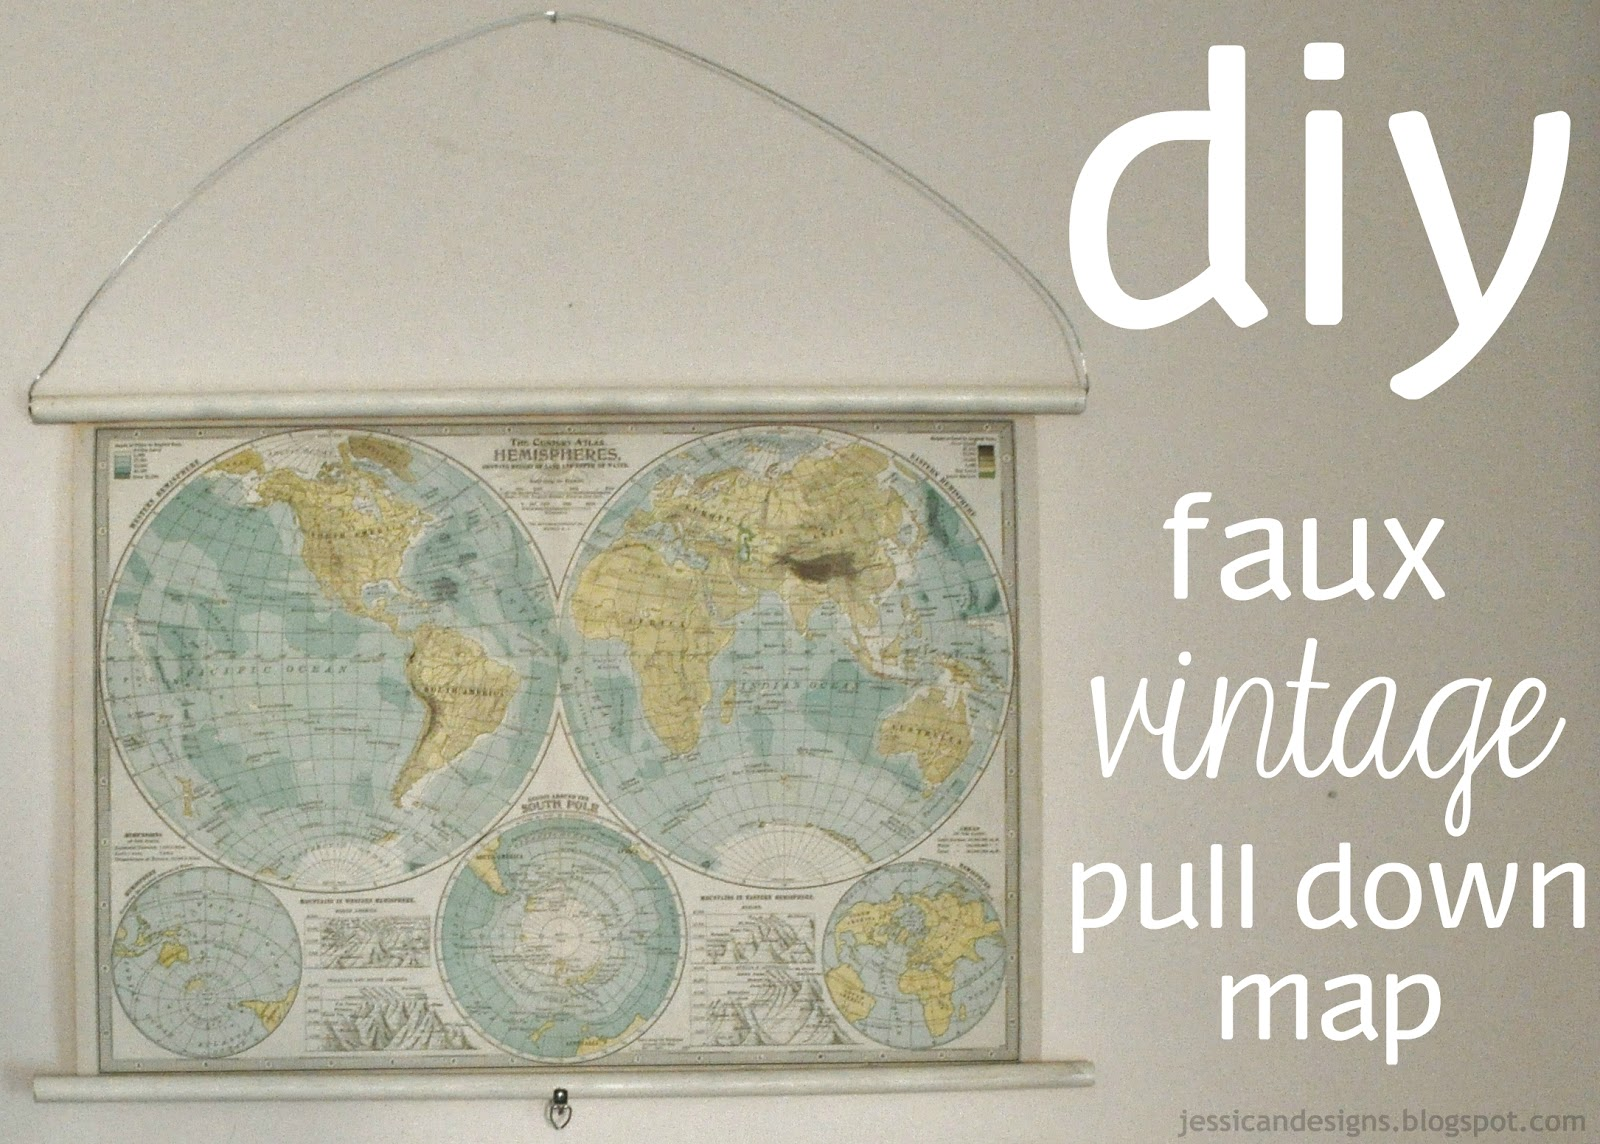 DIY Faux Vintage Pull Down Map by JessicaNDesigns – Julie Ann Art